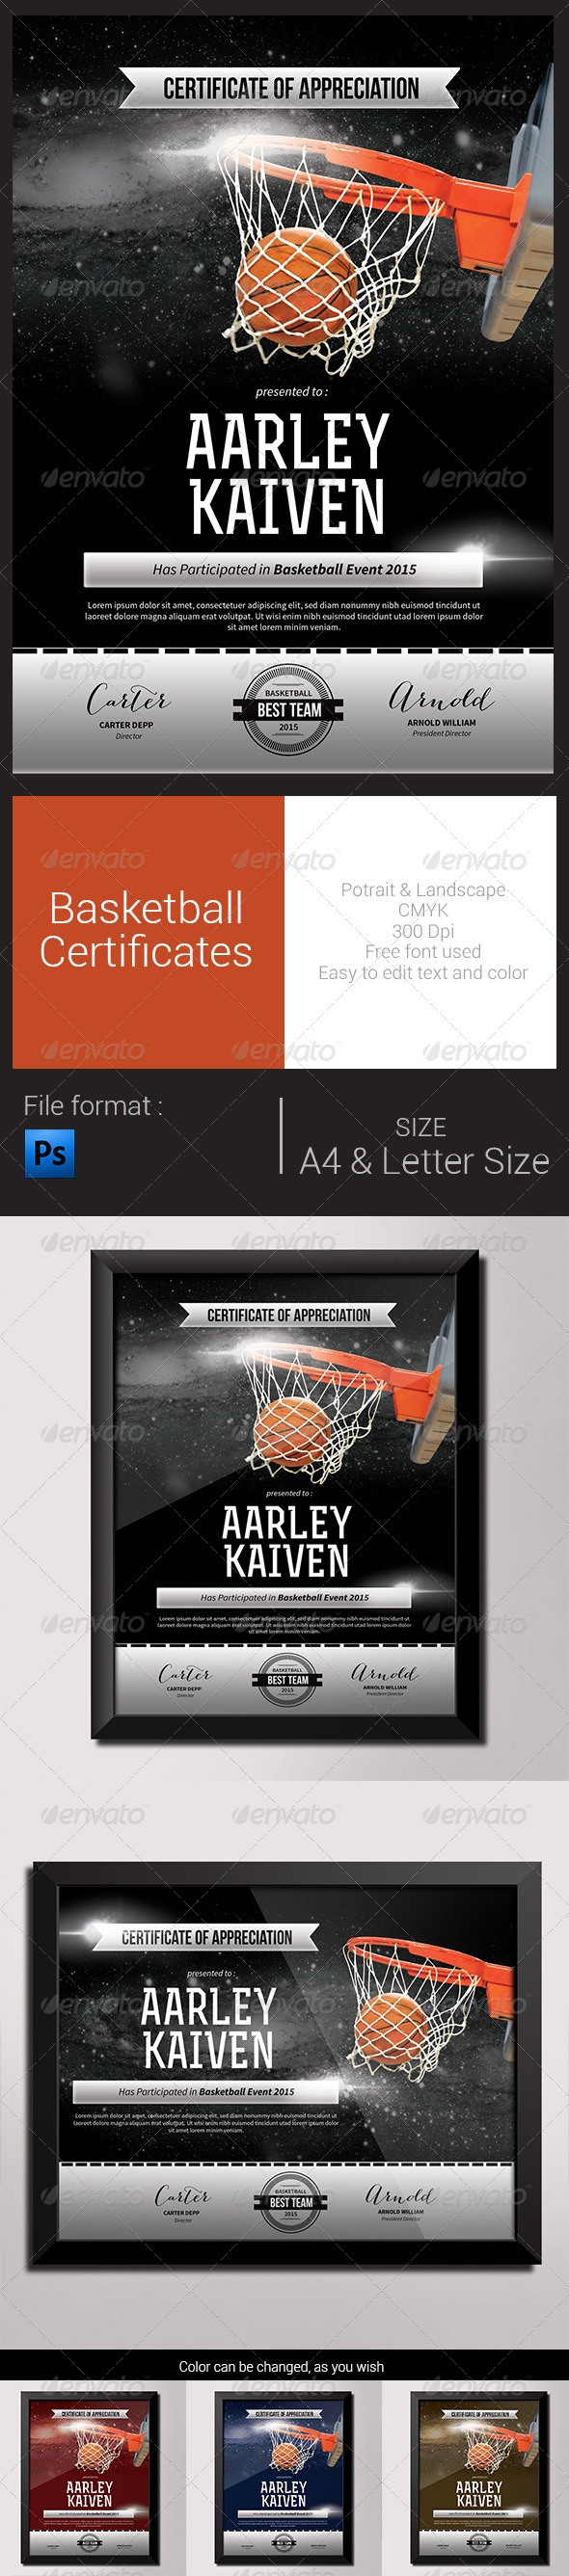 GraphicRiver Basketball Certificates 8292977